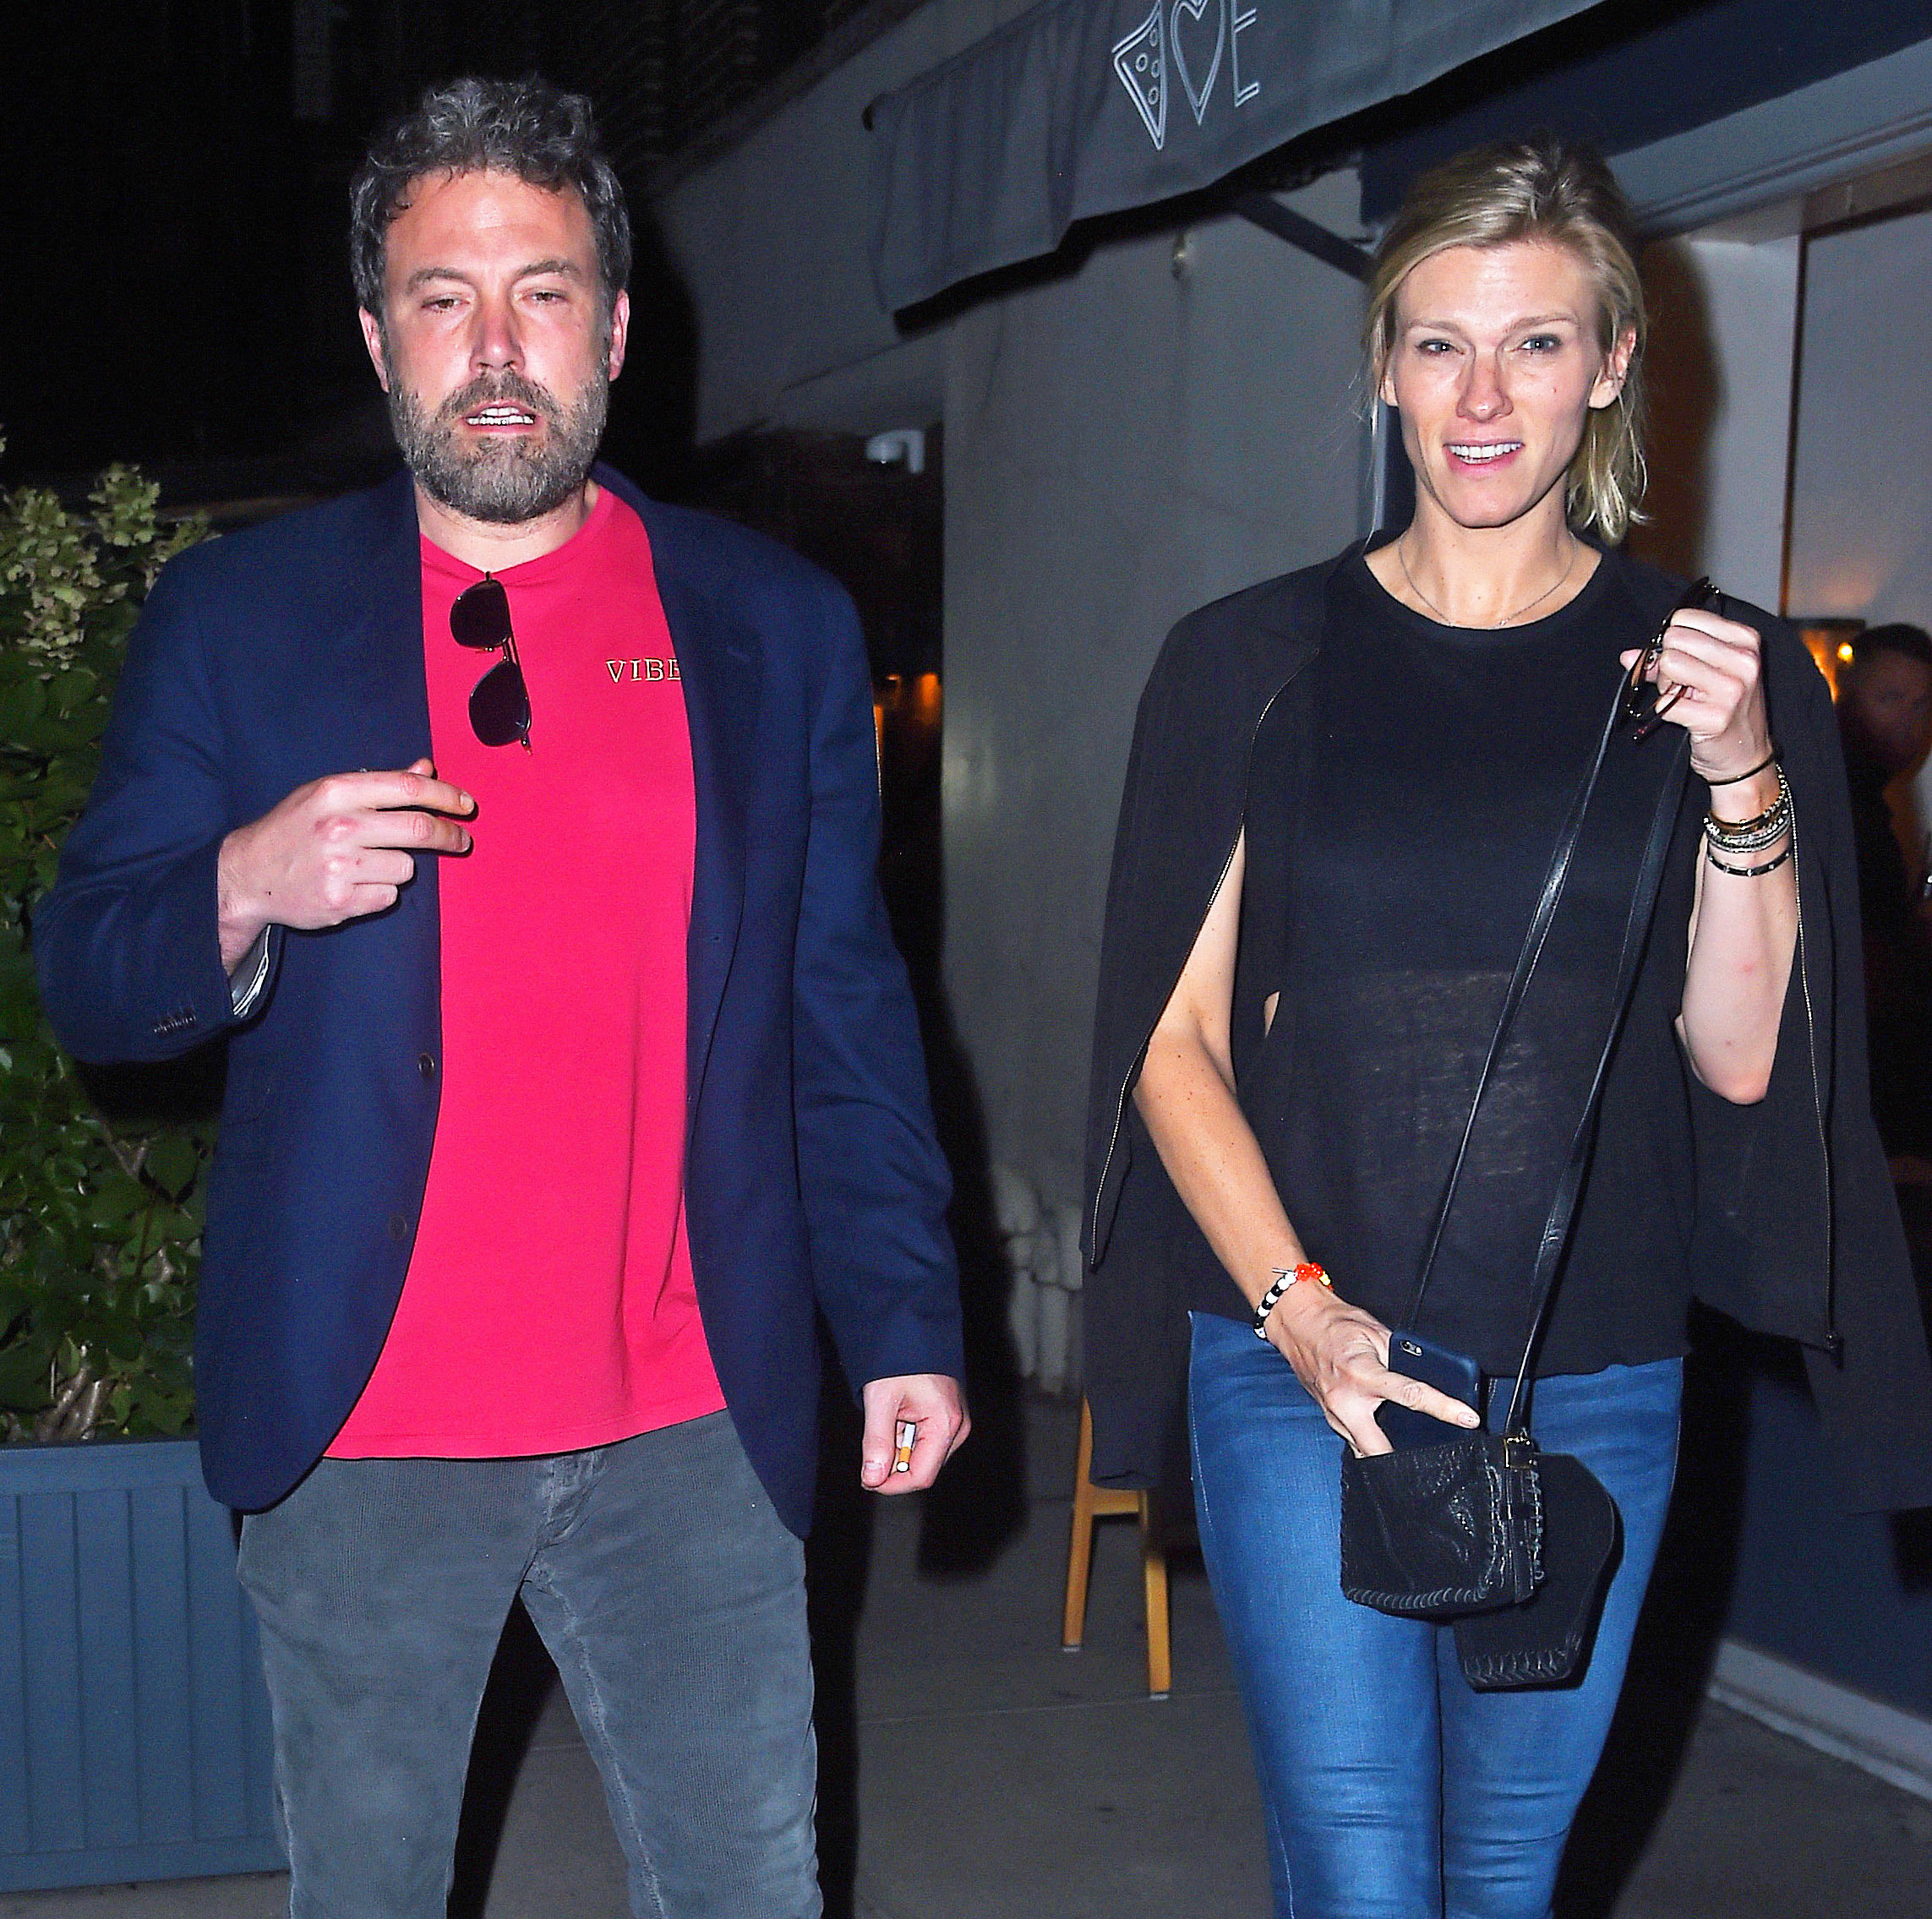 Ben Affleck and Lindsay Shookus step out for a date night in New York City